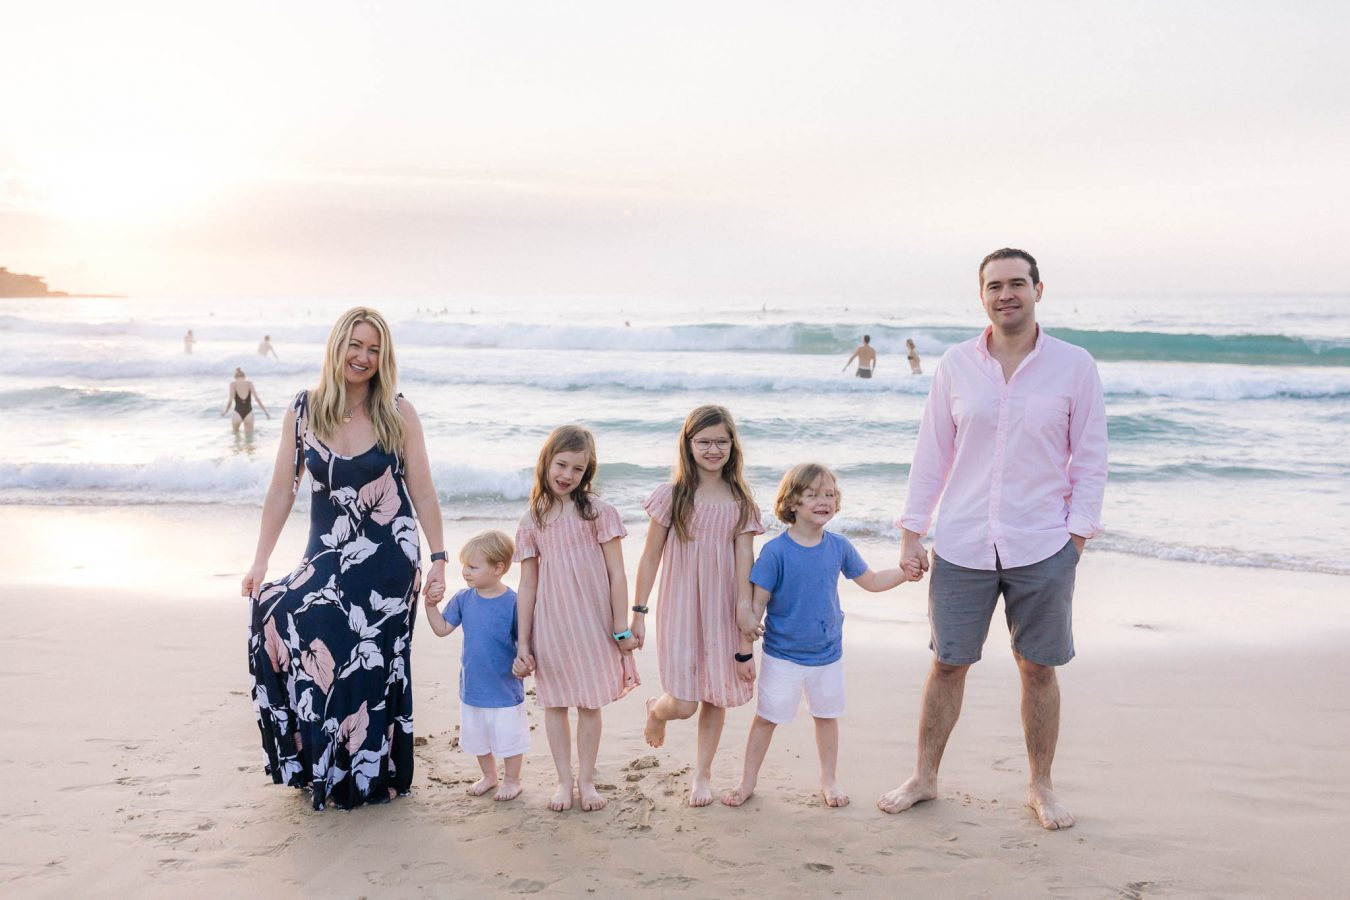 Family photographer bondi beach sydney australia-0012